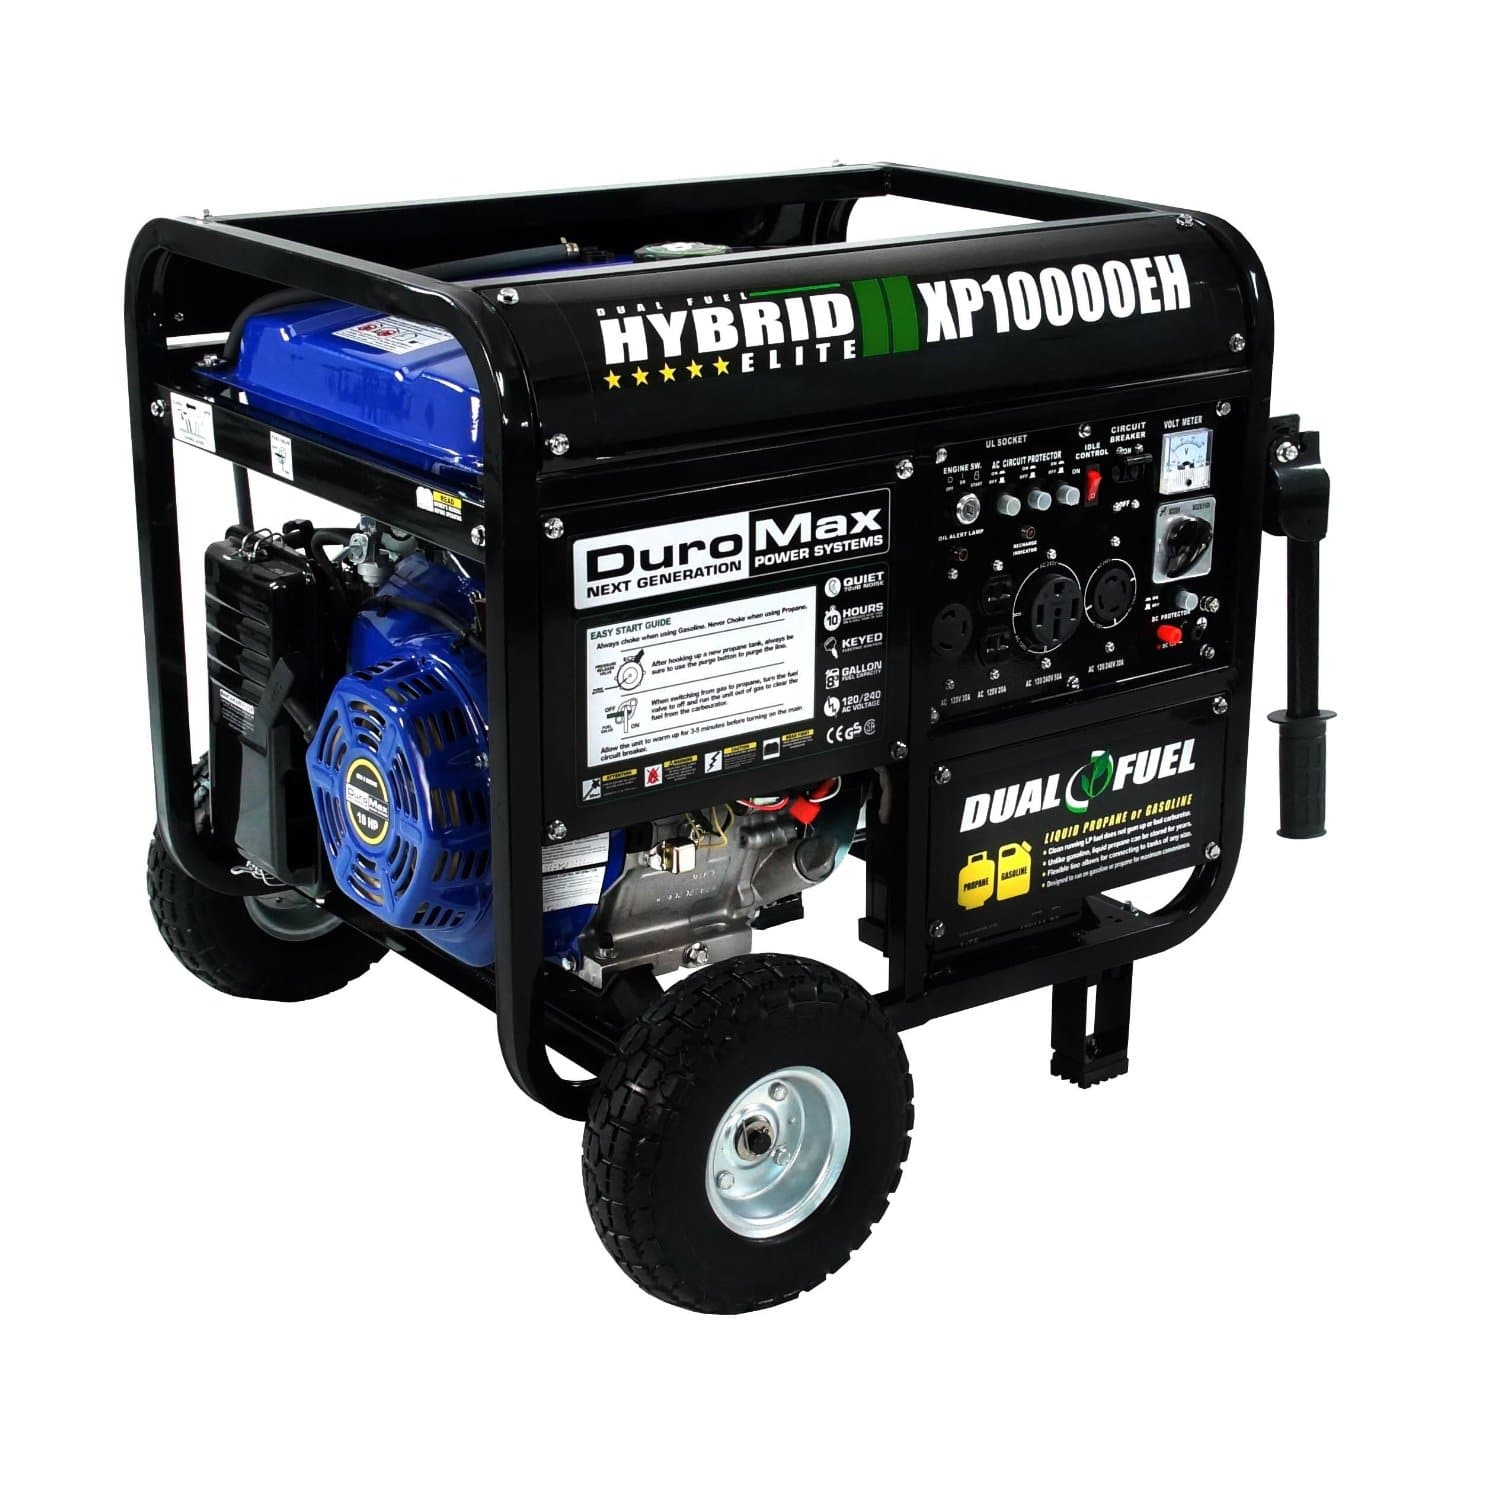 10 Best Outdoor Generators Review 2016 Lawn Care Pal